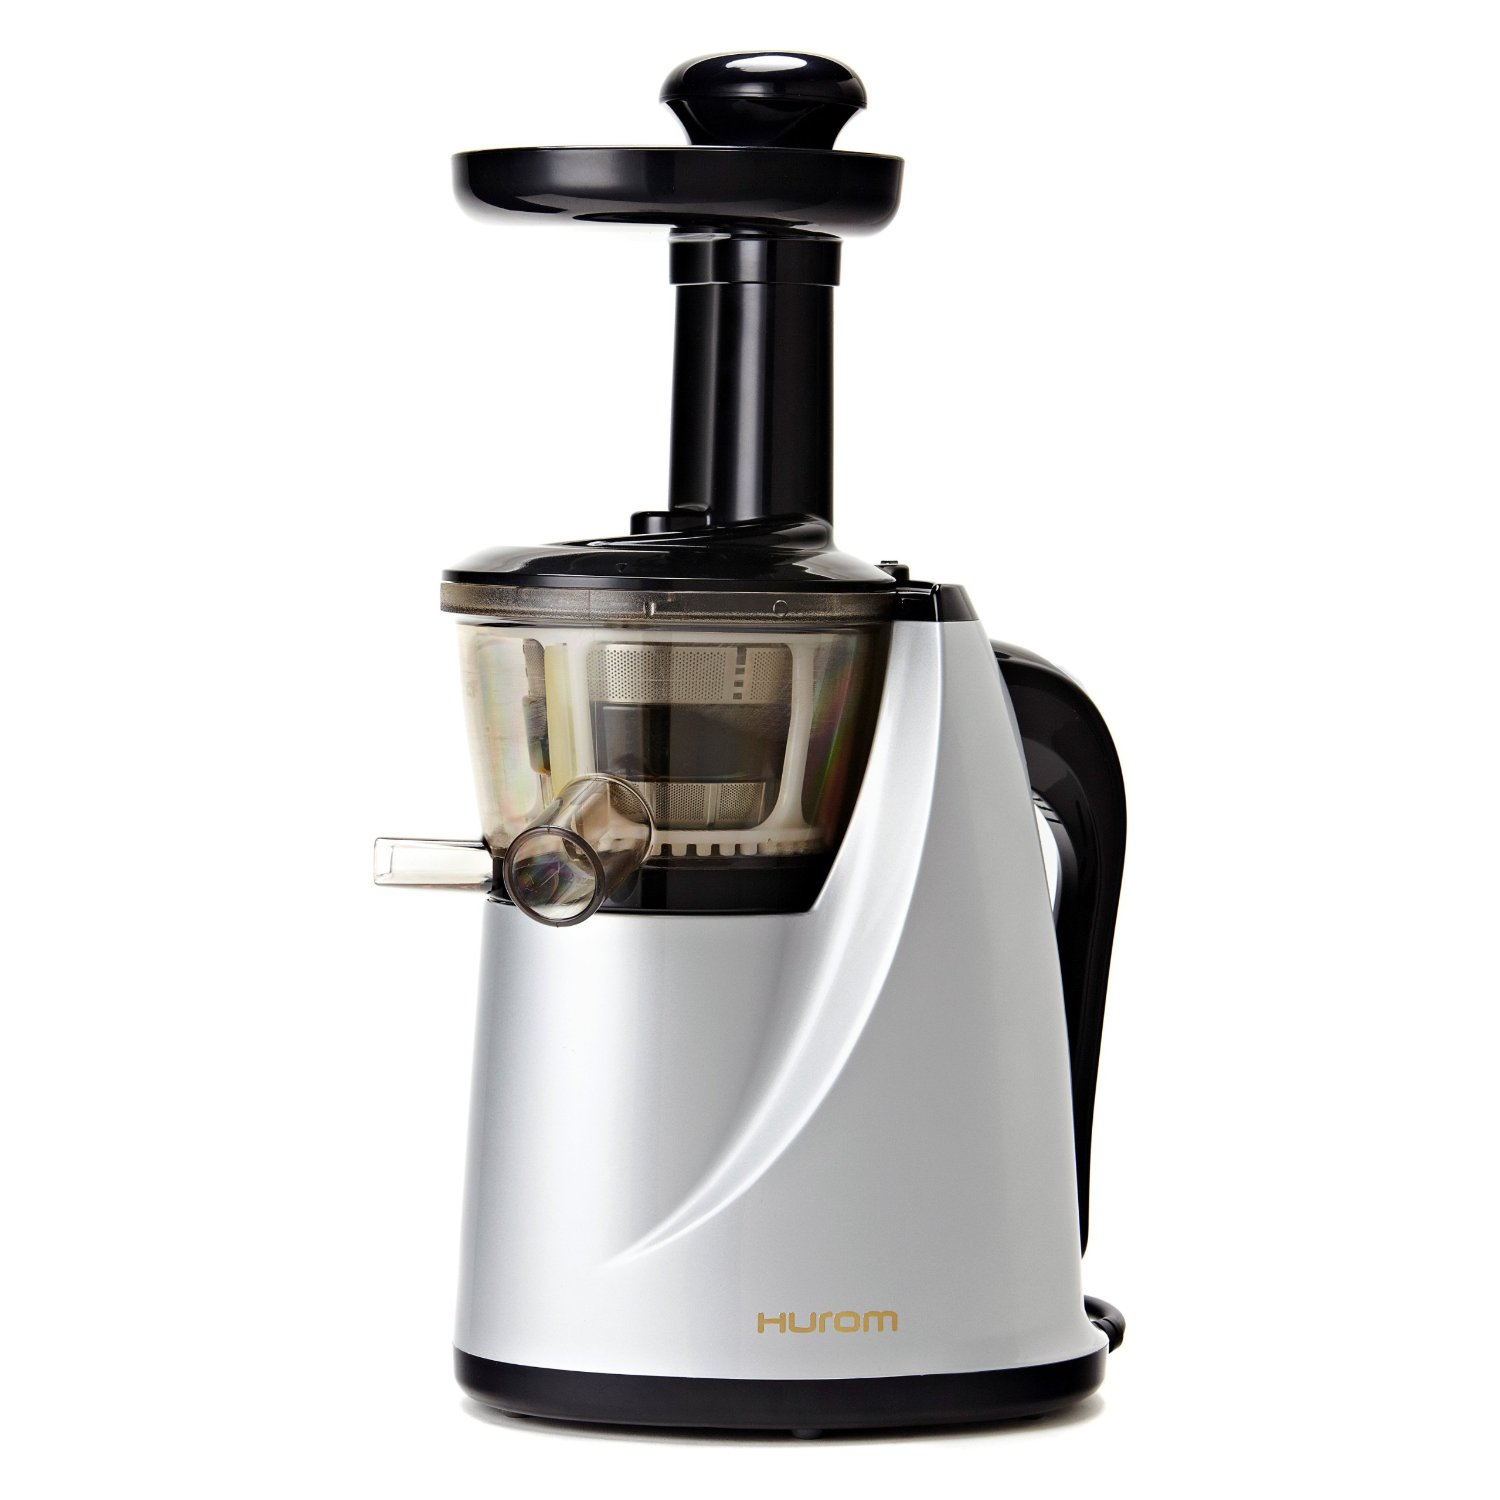 Hurom Slow Juicer Almond Milk Recipe : Hurom Juicer Reviews Hurom Cold Press Juicers Comparison - Best Cold Press Juicers